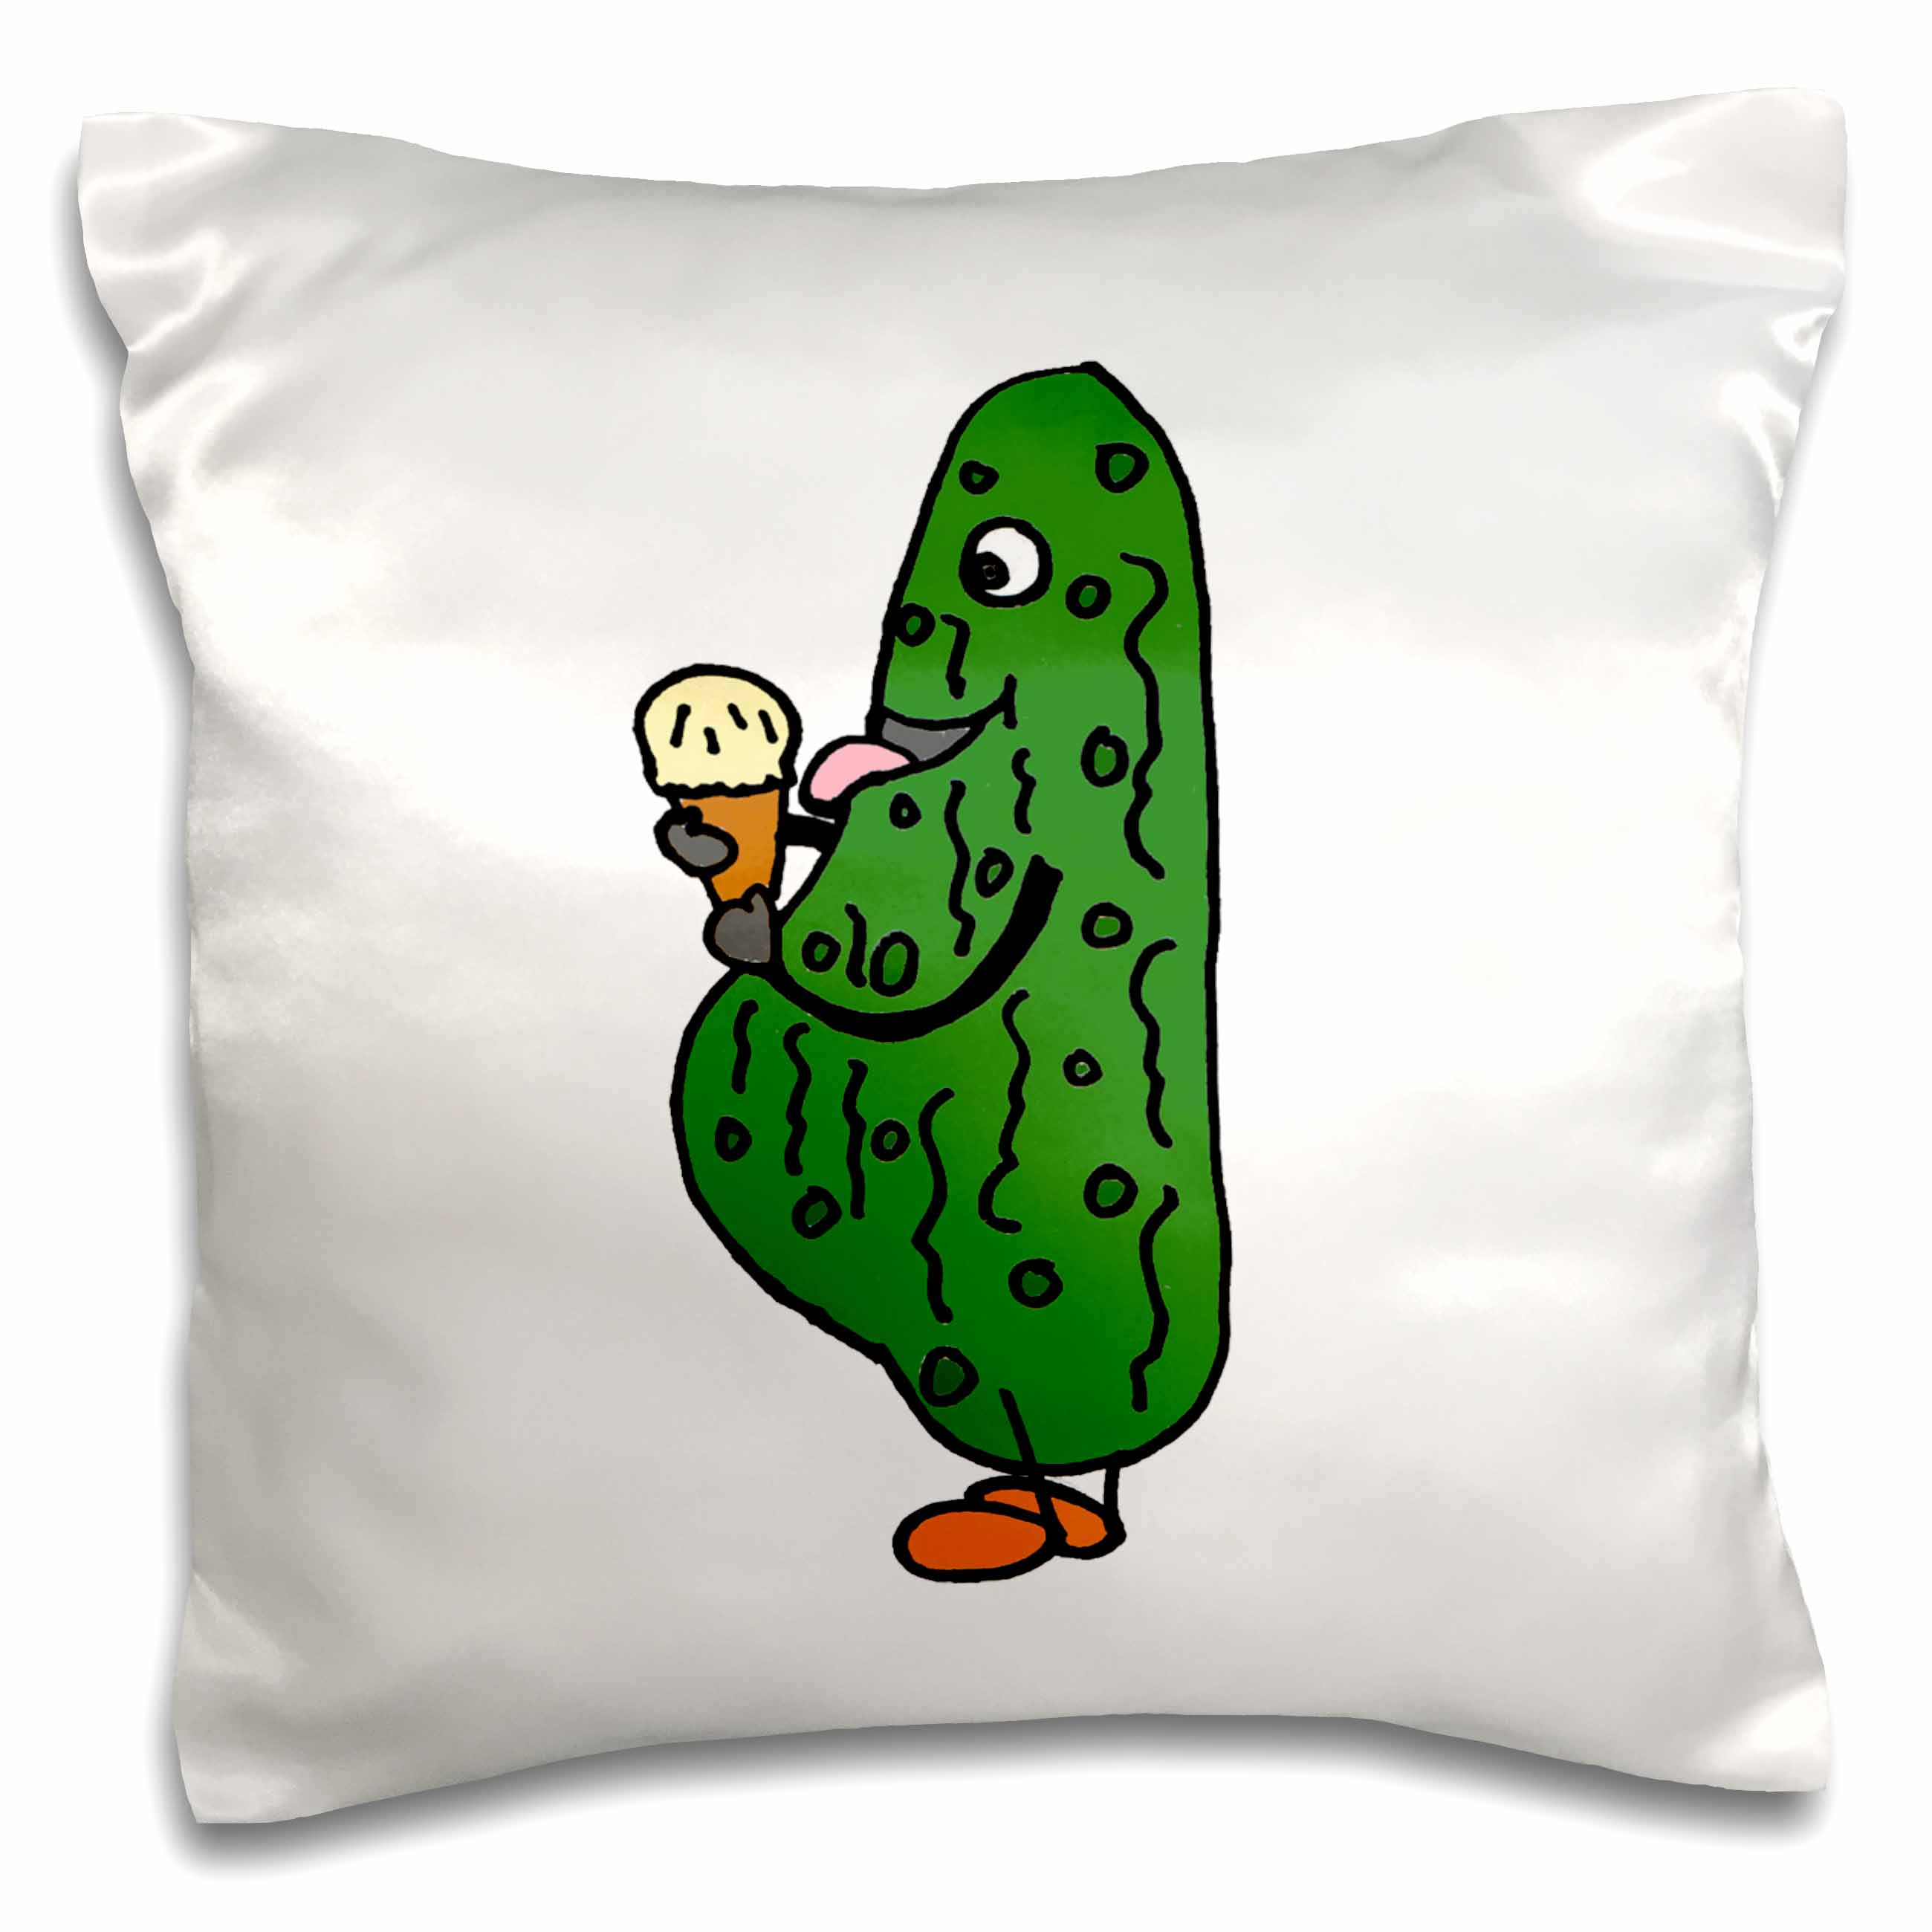 3dRose Funny Pregnant Pickle Eating Ice Cream Cone, Pillow Case, 16 by 16-inch